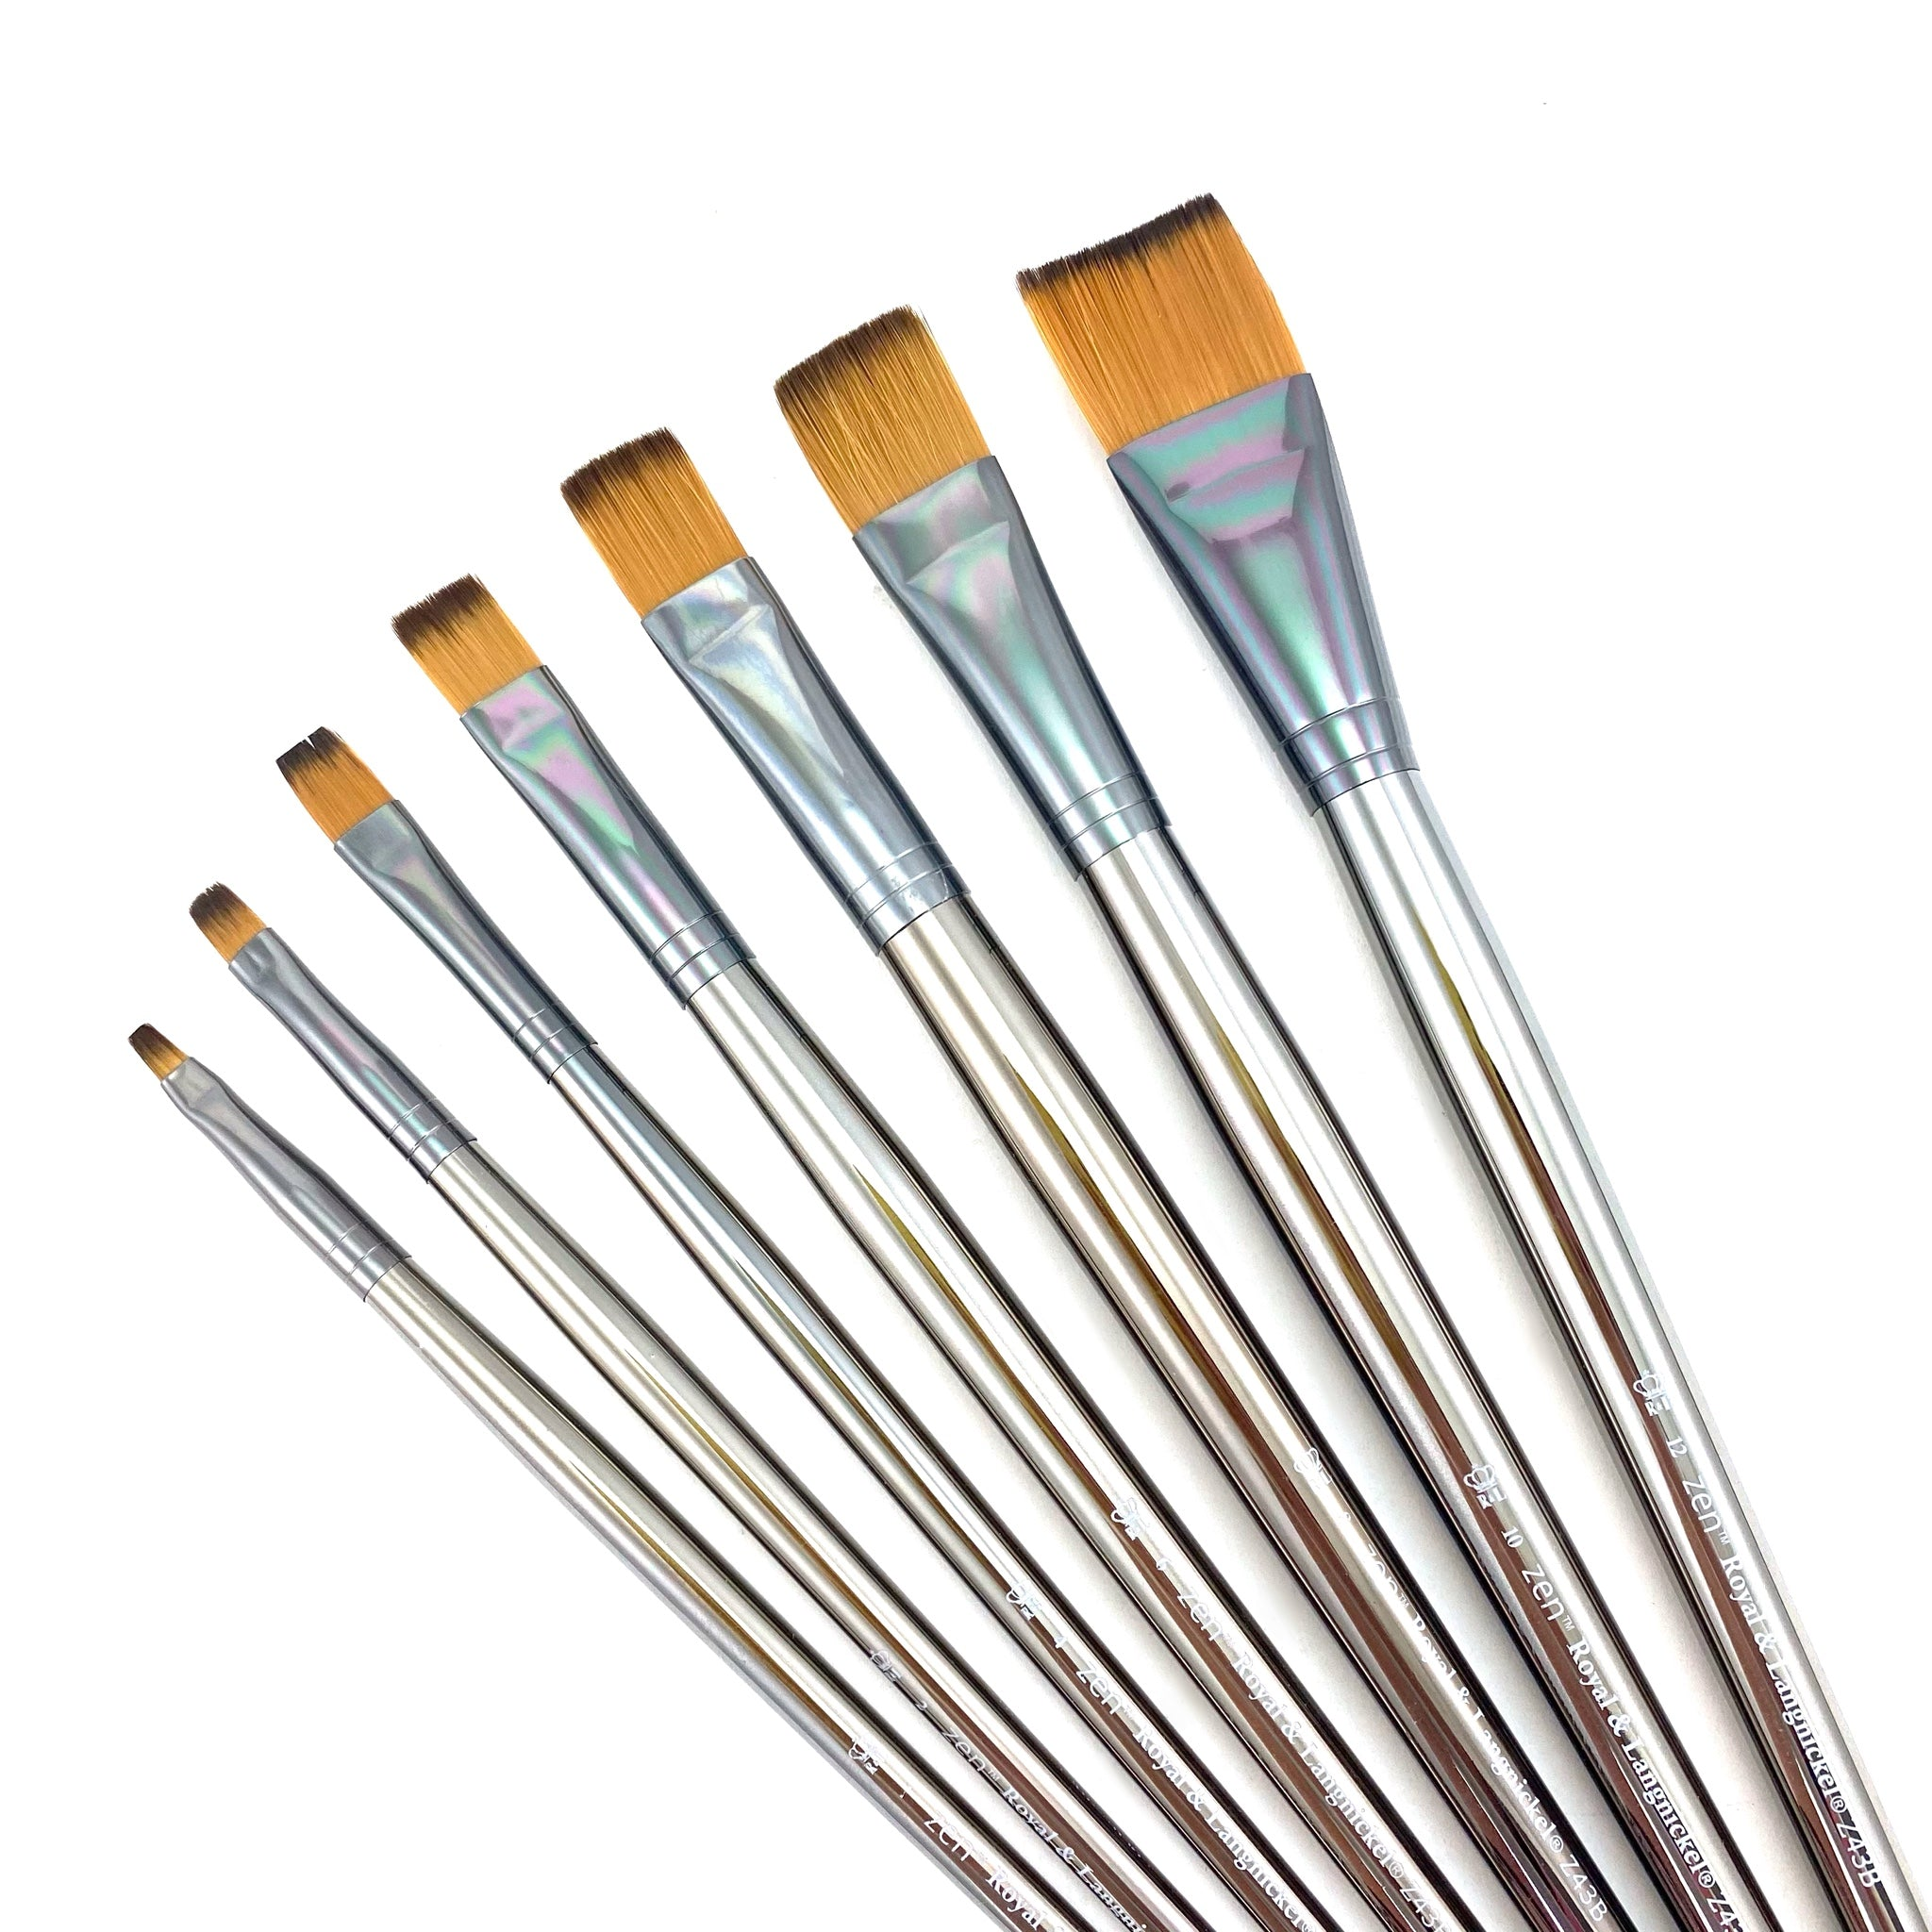 Royal & Langnickle Zen Long Handle Brushes - 43 Series - Bright / 6 by Royal & Langnickle - K. A. Artist Shop